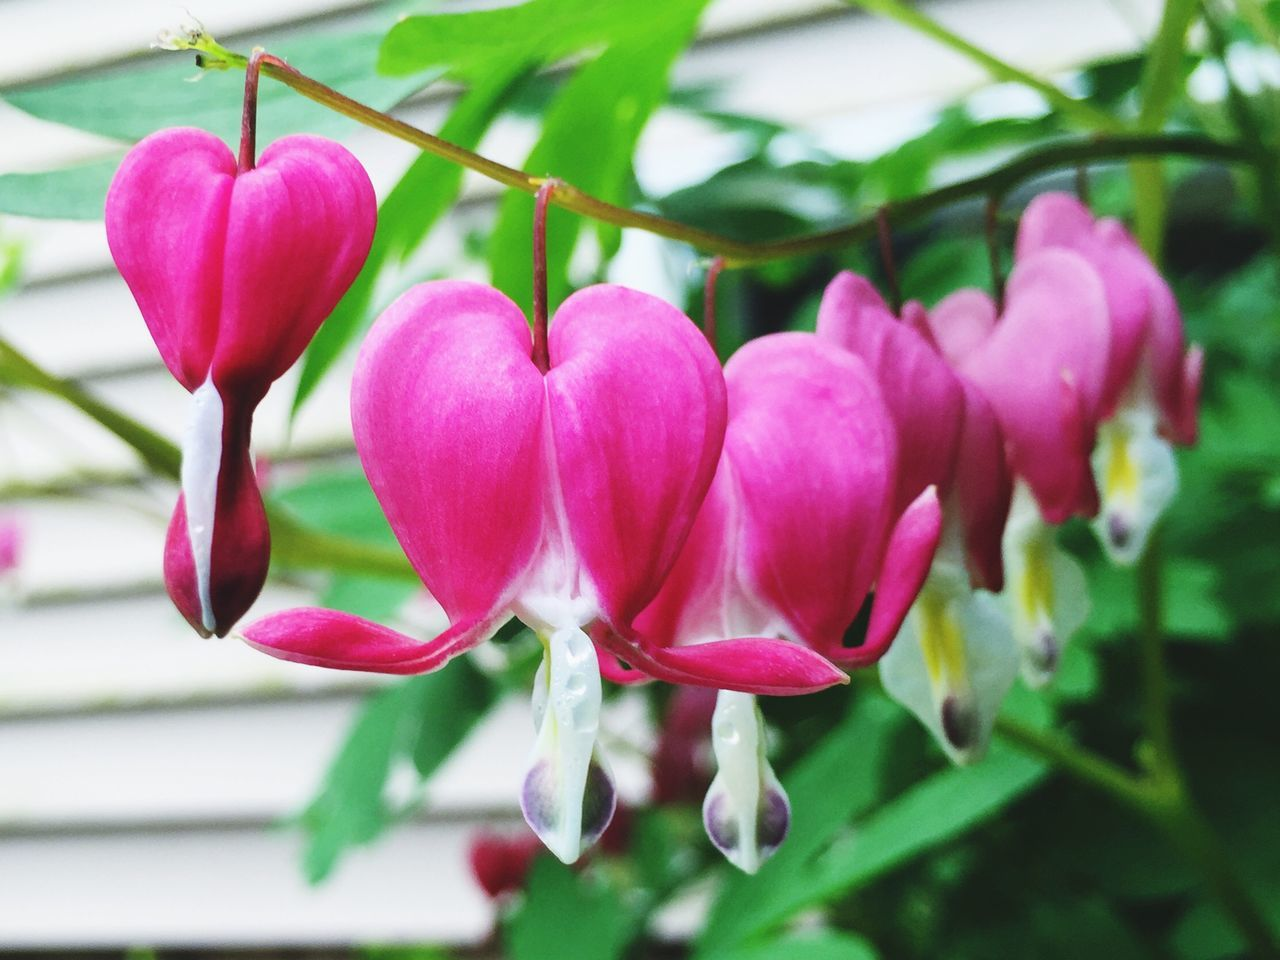 Focus On Foreground Pink Color Freshness Close-up Day Growth No People Outdoors Beauty In Nature Fragility Plant Nature Bleeding Heart